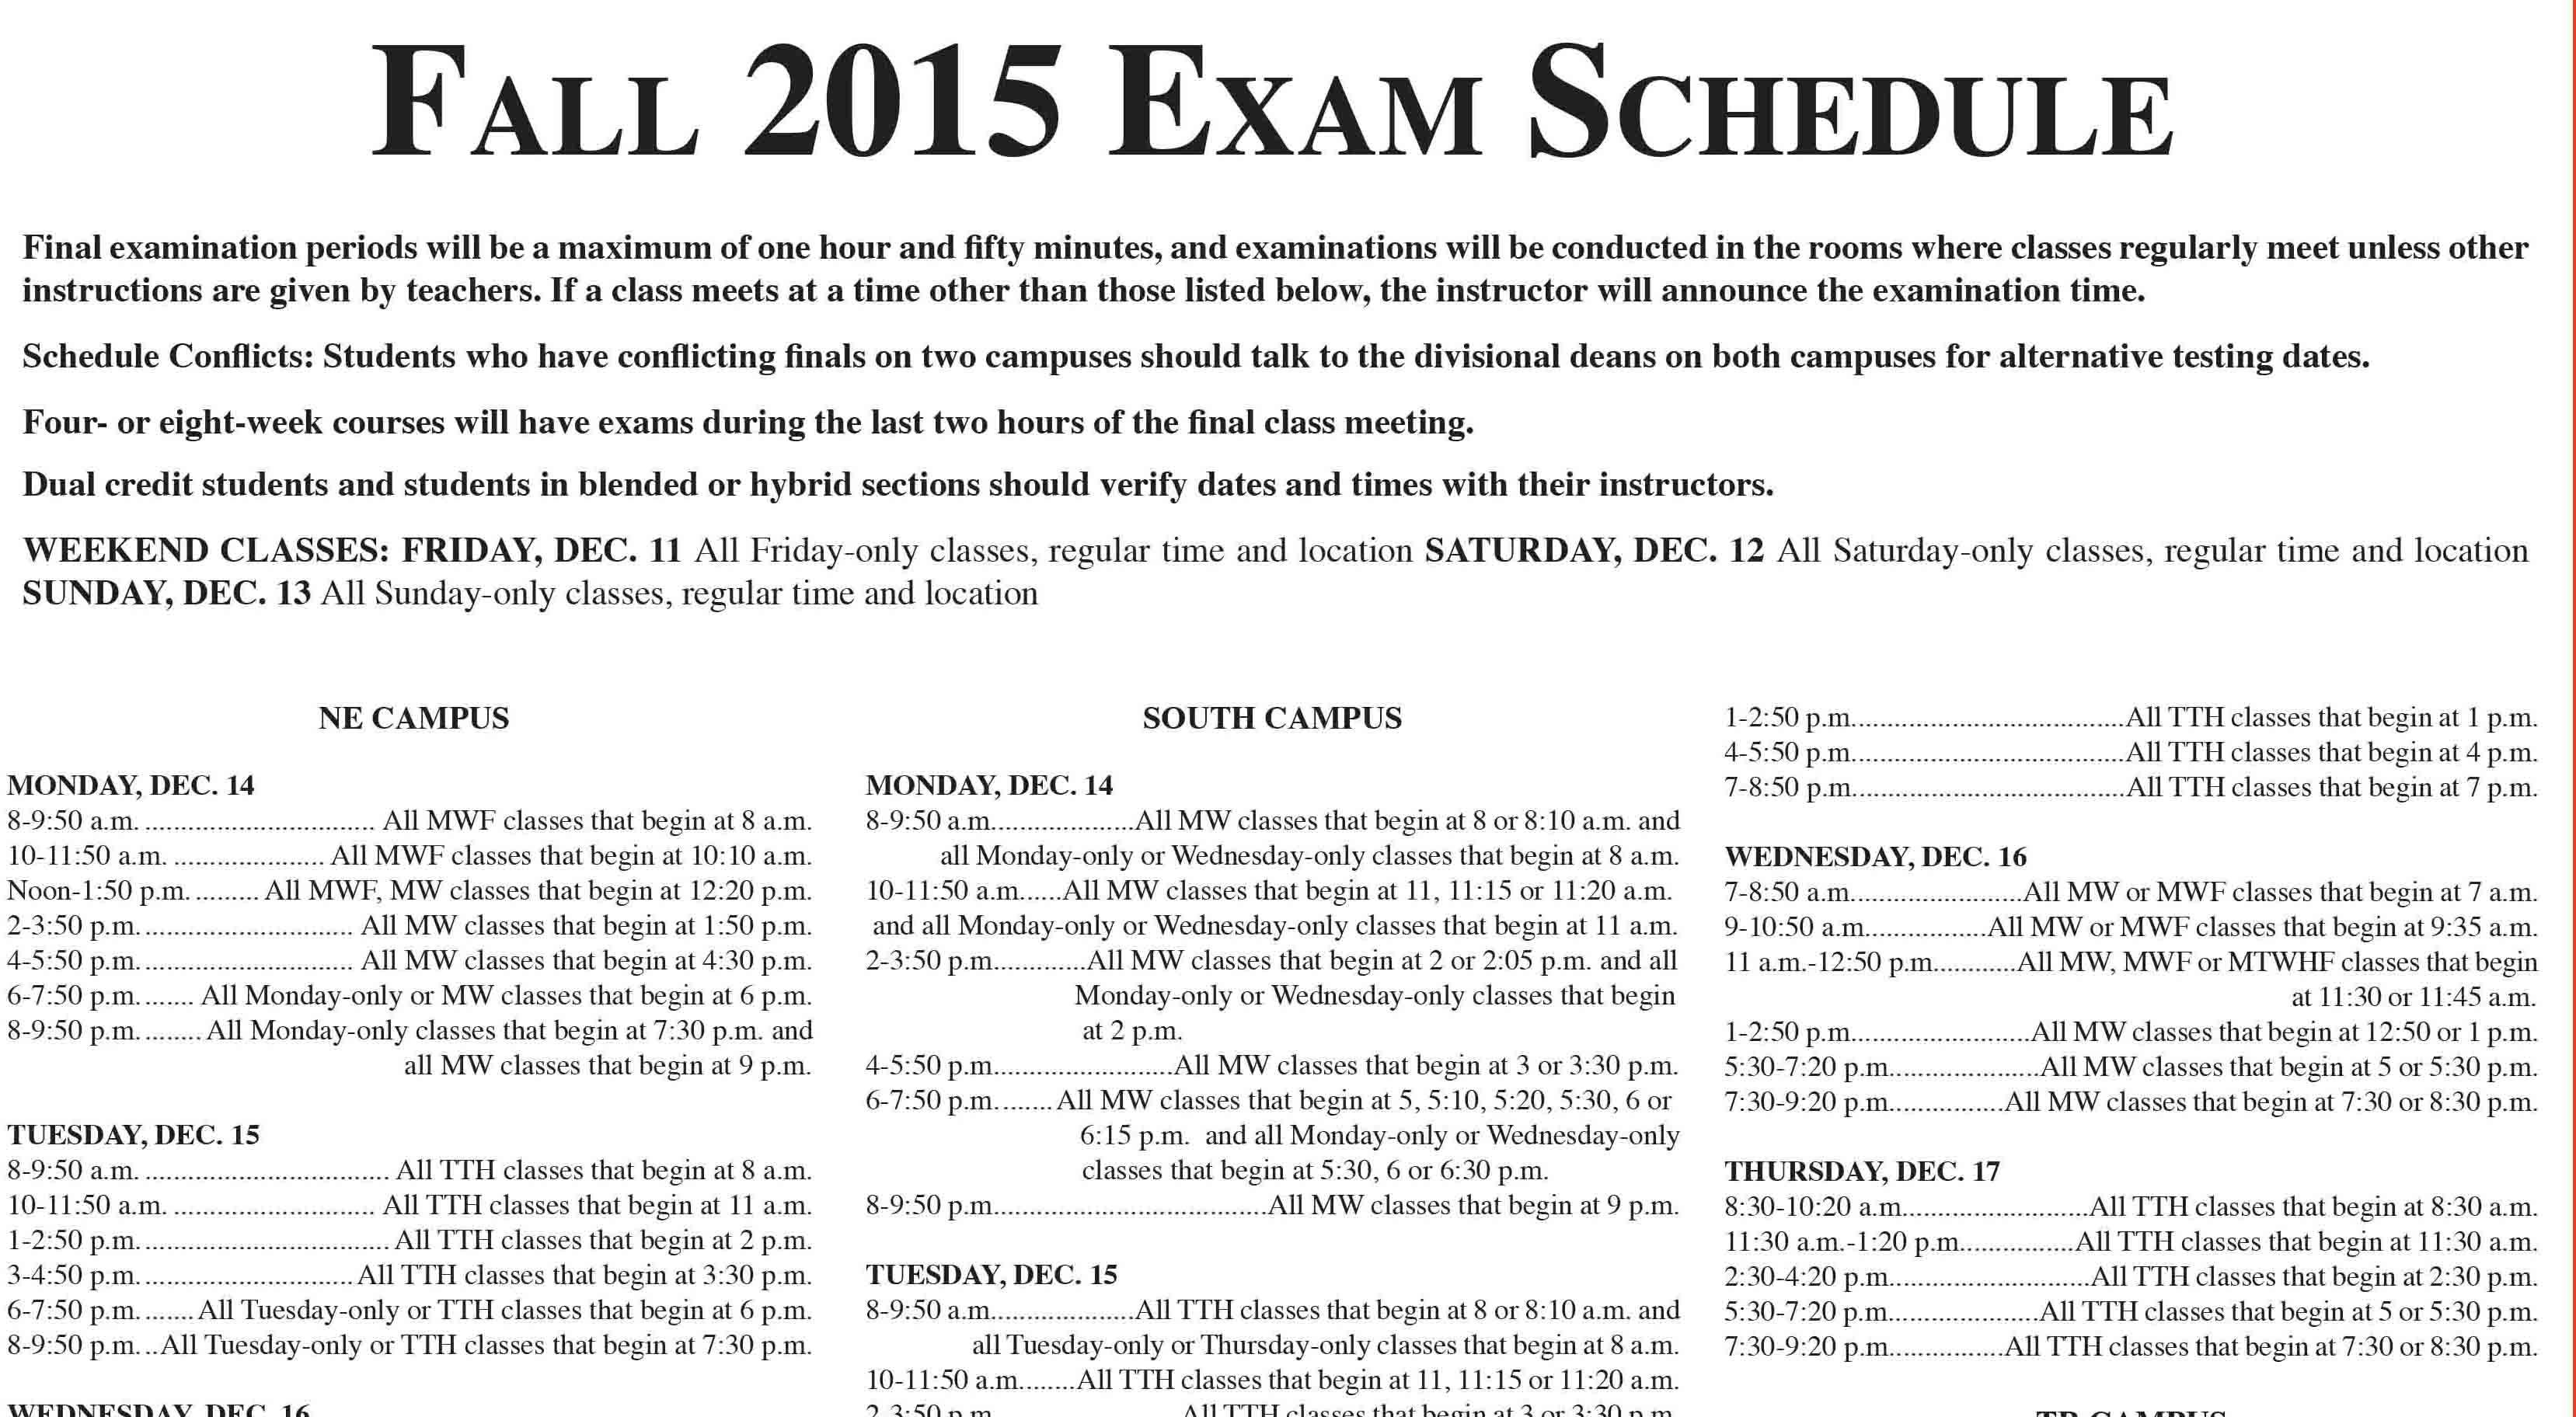 Fall 2015 Exam Schedule - The Collegian